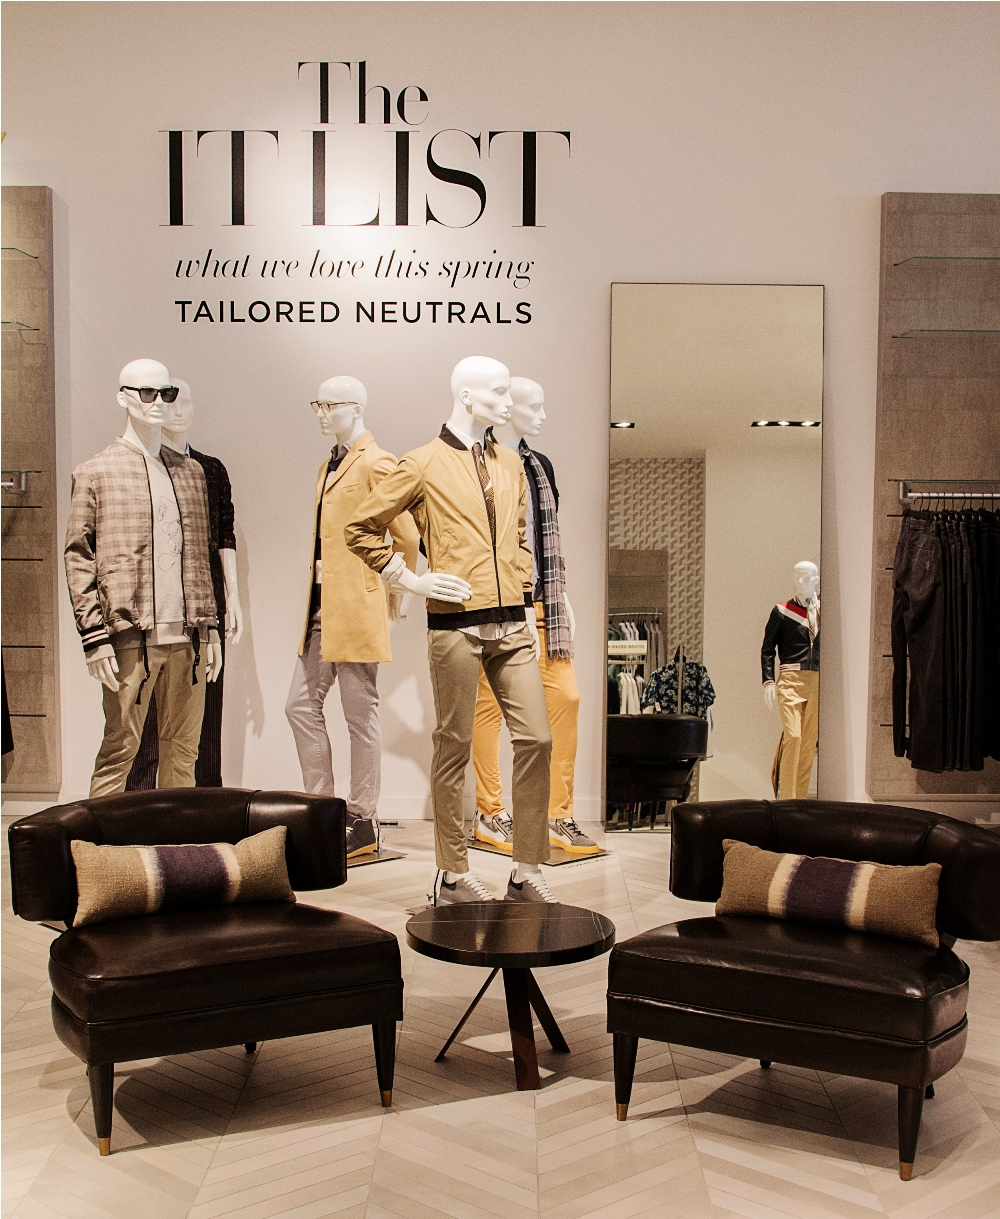 SAKS 5TH AVE OPENS DOWNTOWN MENS STORE